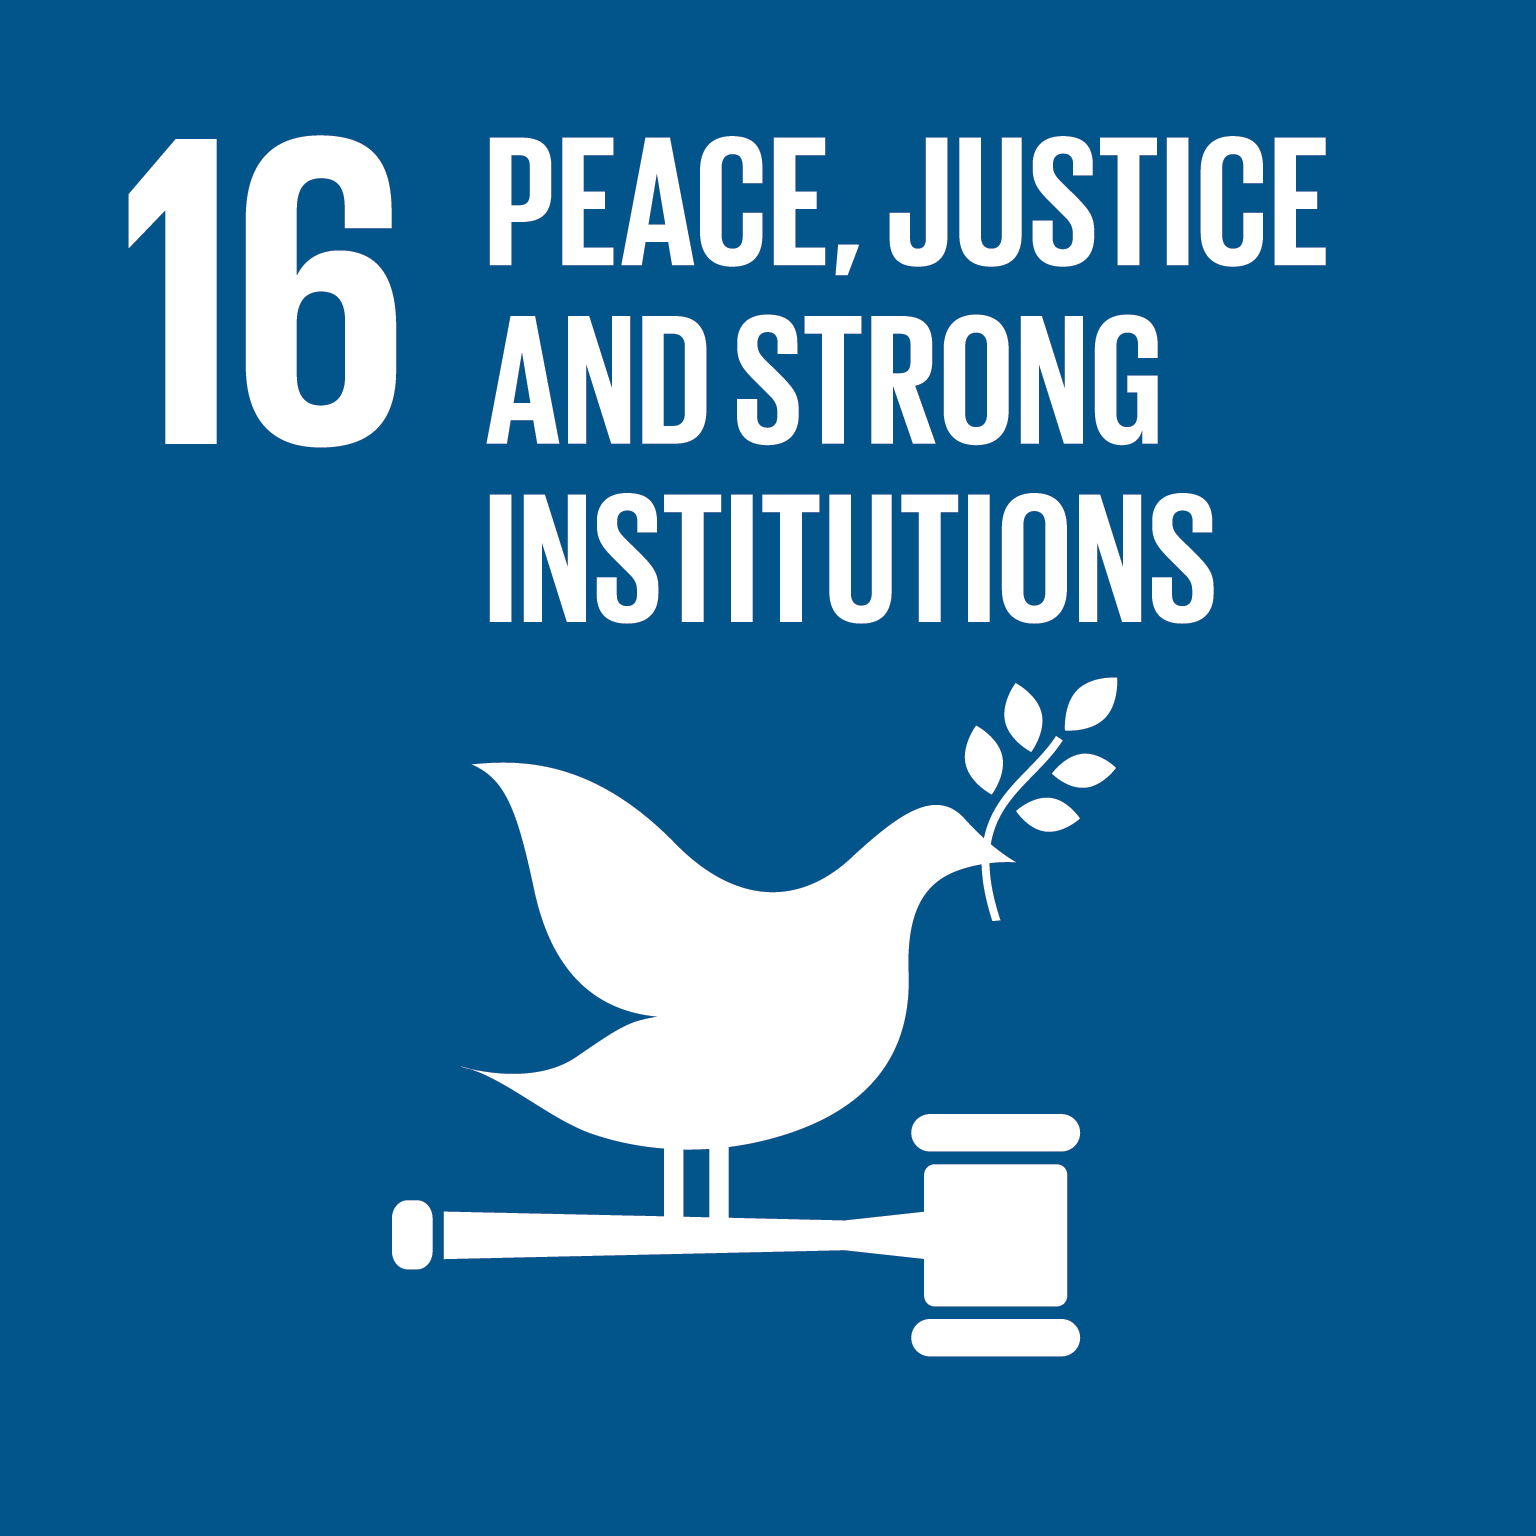 peace justice and strong institutions icon